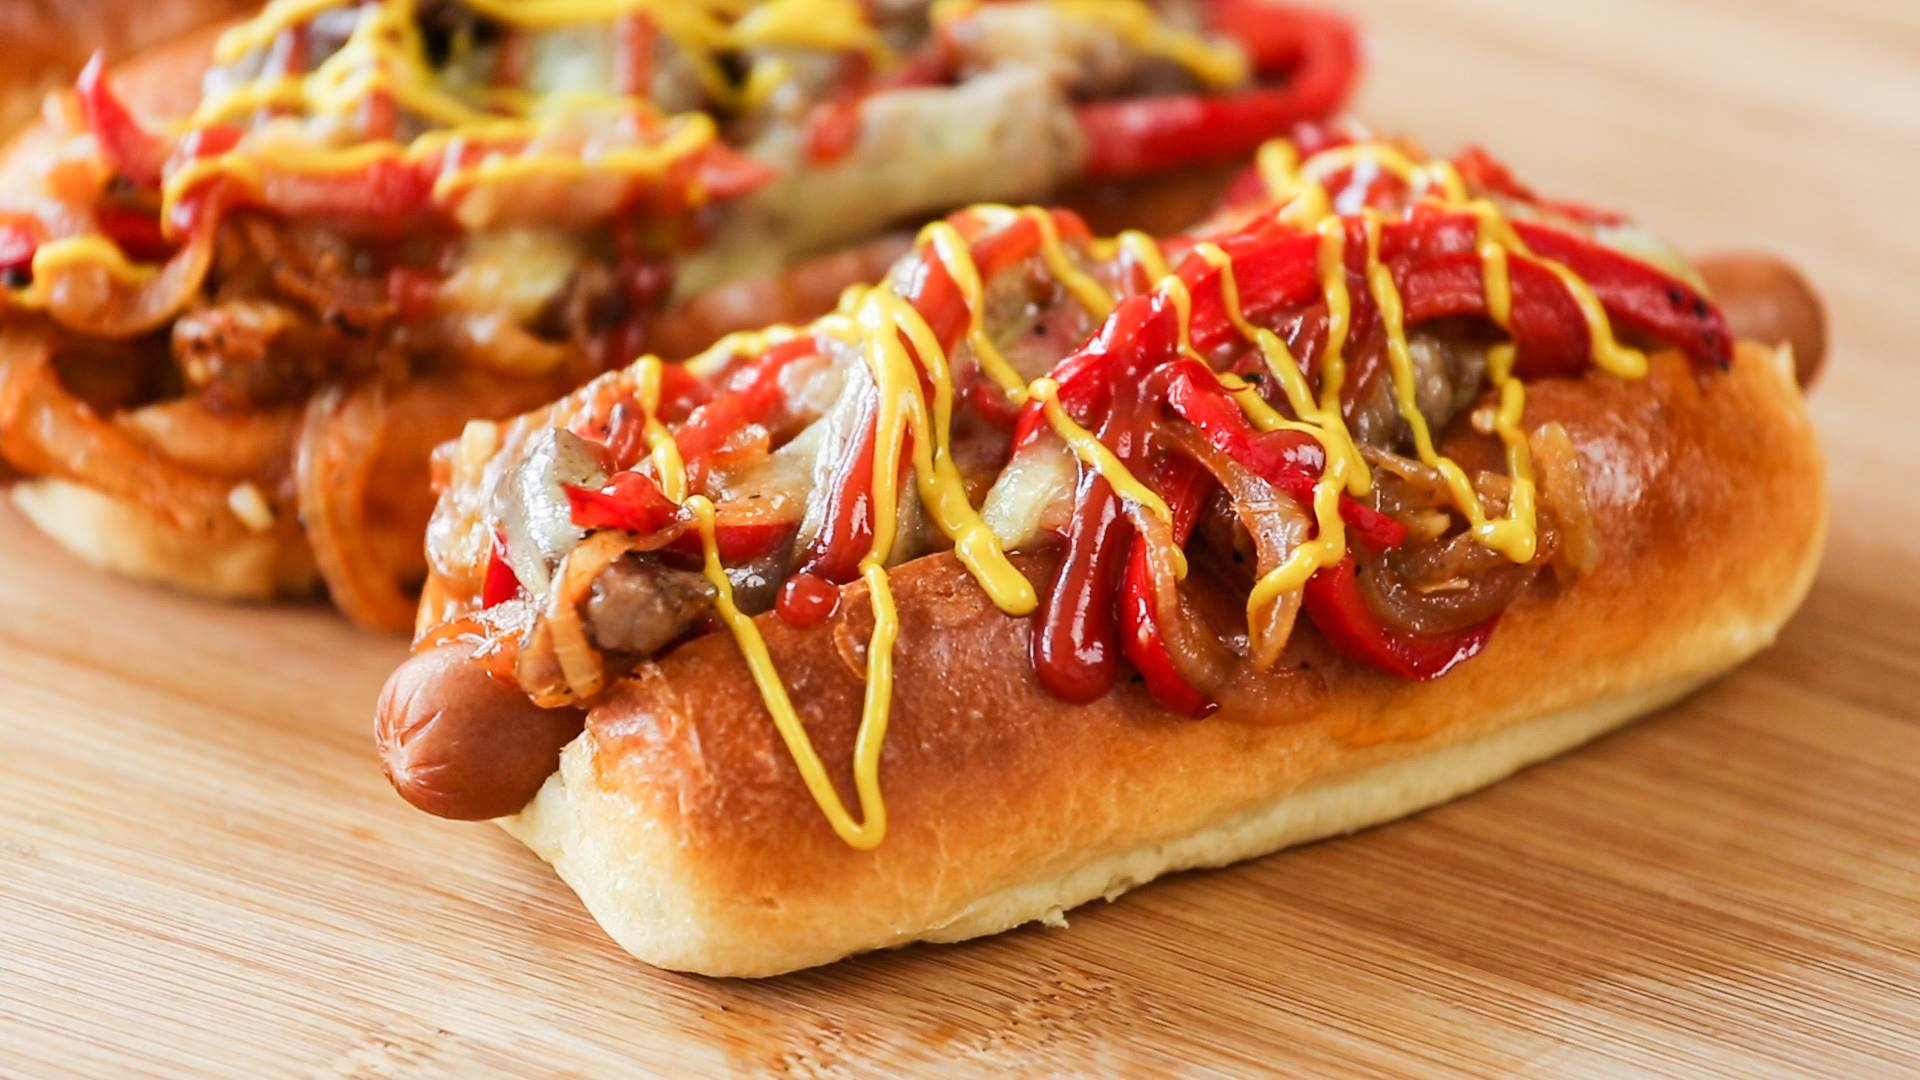 Heres How You Make Philly Cheese Steak Dogs 13247754 10154124023989361 5754164824392605826 o